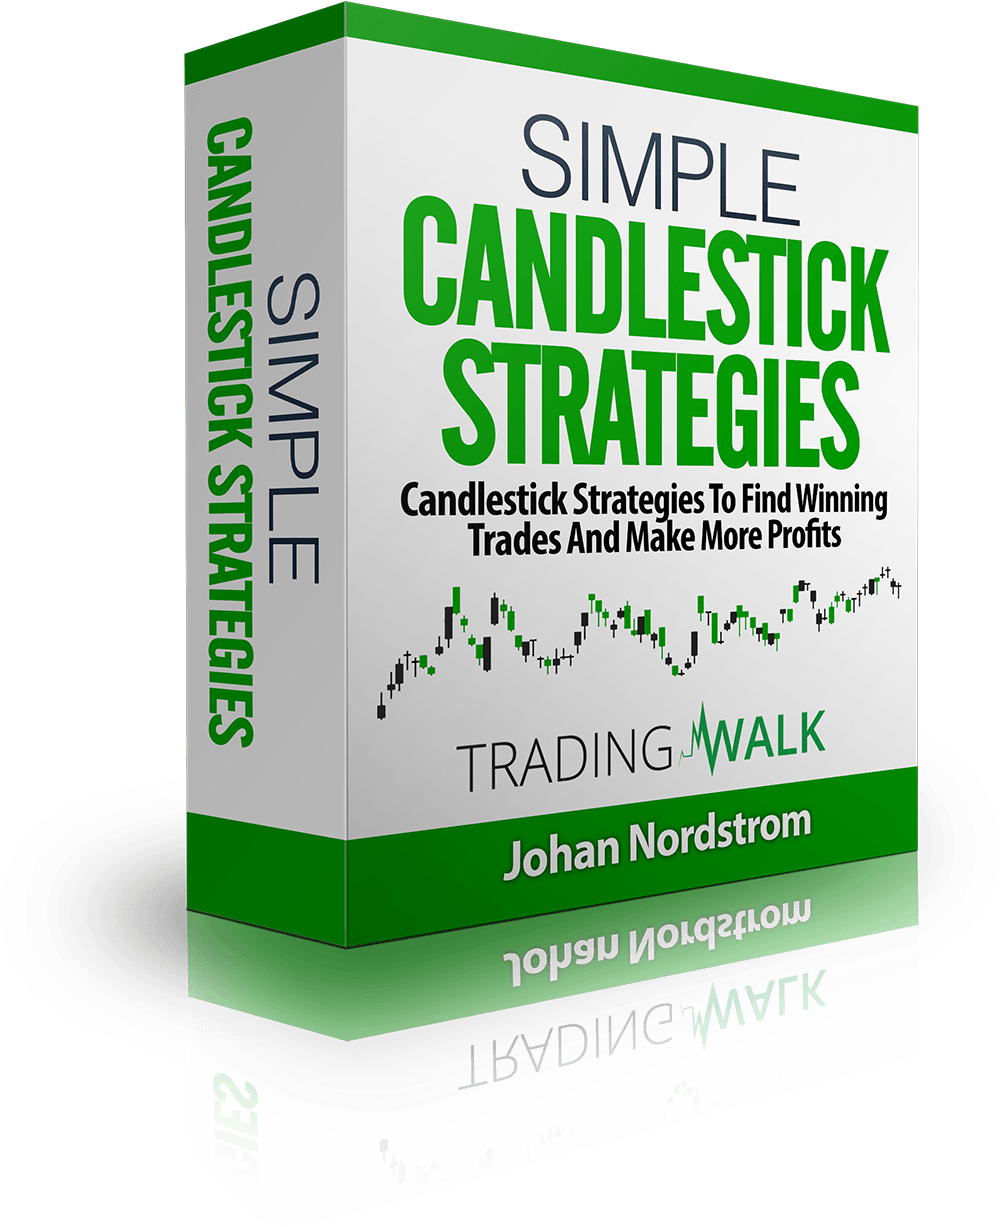 Simple Candlestick Trading Strategies Investing Course